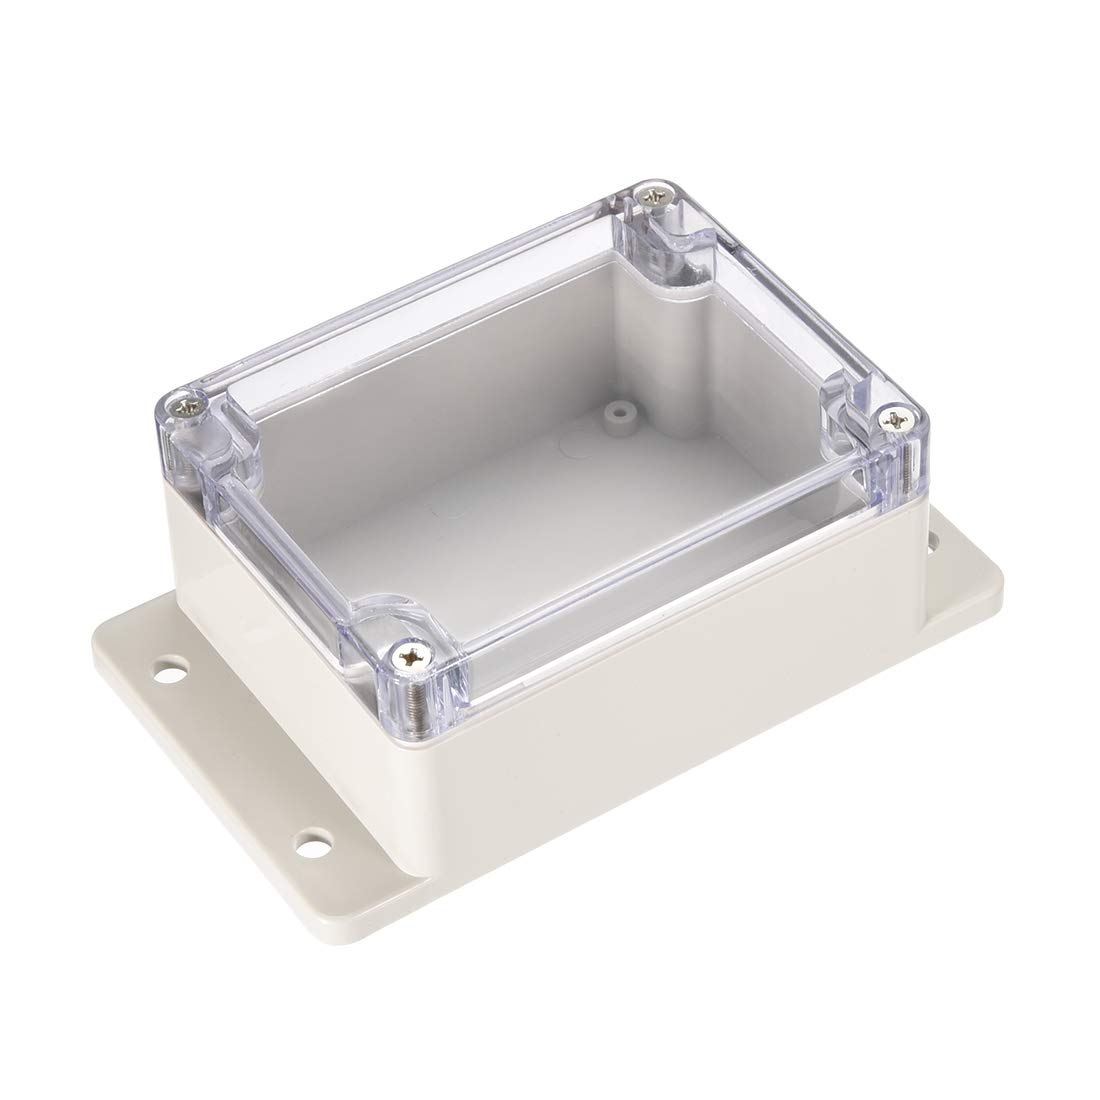 uxcell 115mmx90mmx56mm(4.5x3.5x2.2) ABS Junction Box Universal Project Enclosure w PC Transparent Cover a17031600ux1138